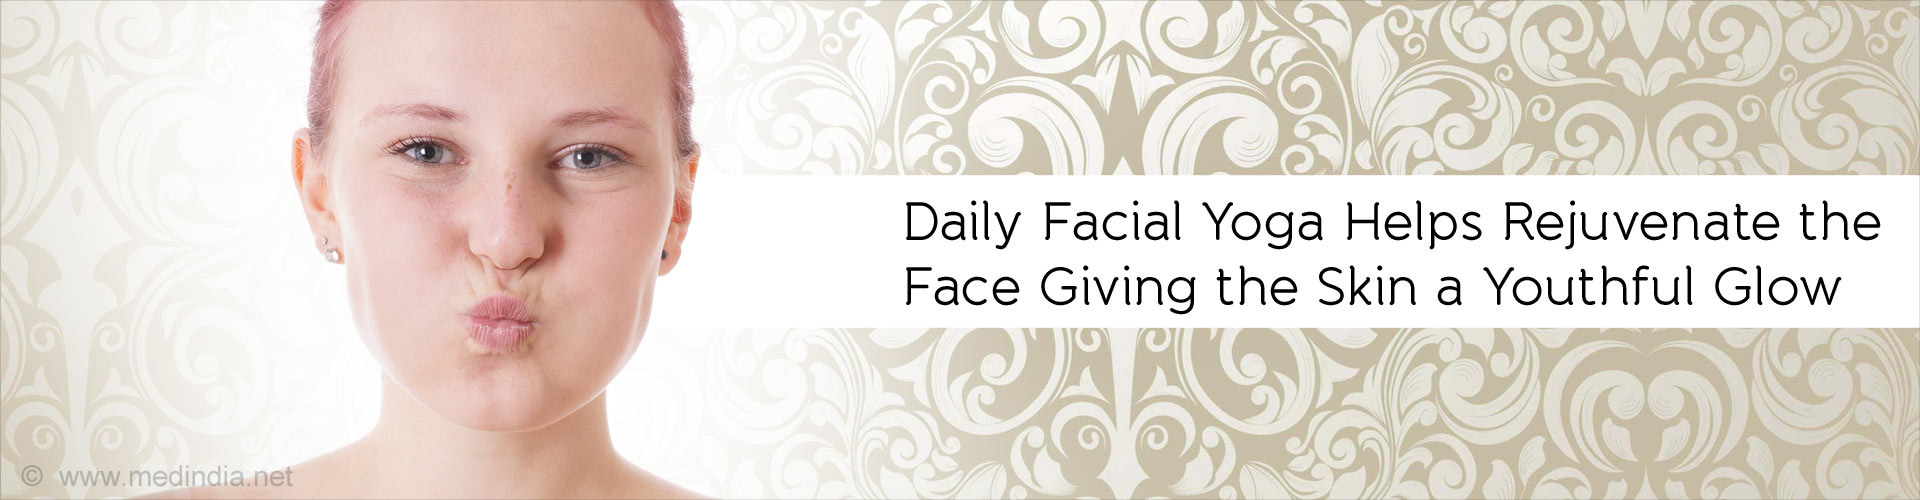 Daily Facial Yoga Helps Rejuvenate the Face Giving the Skin a Youthful Glow